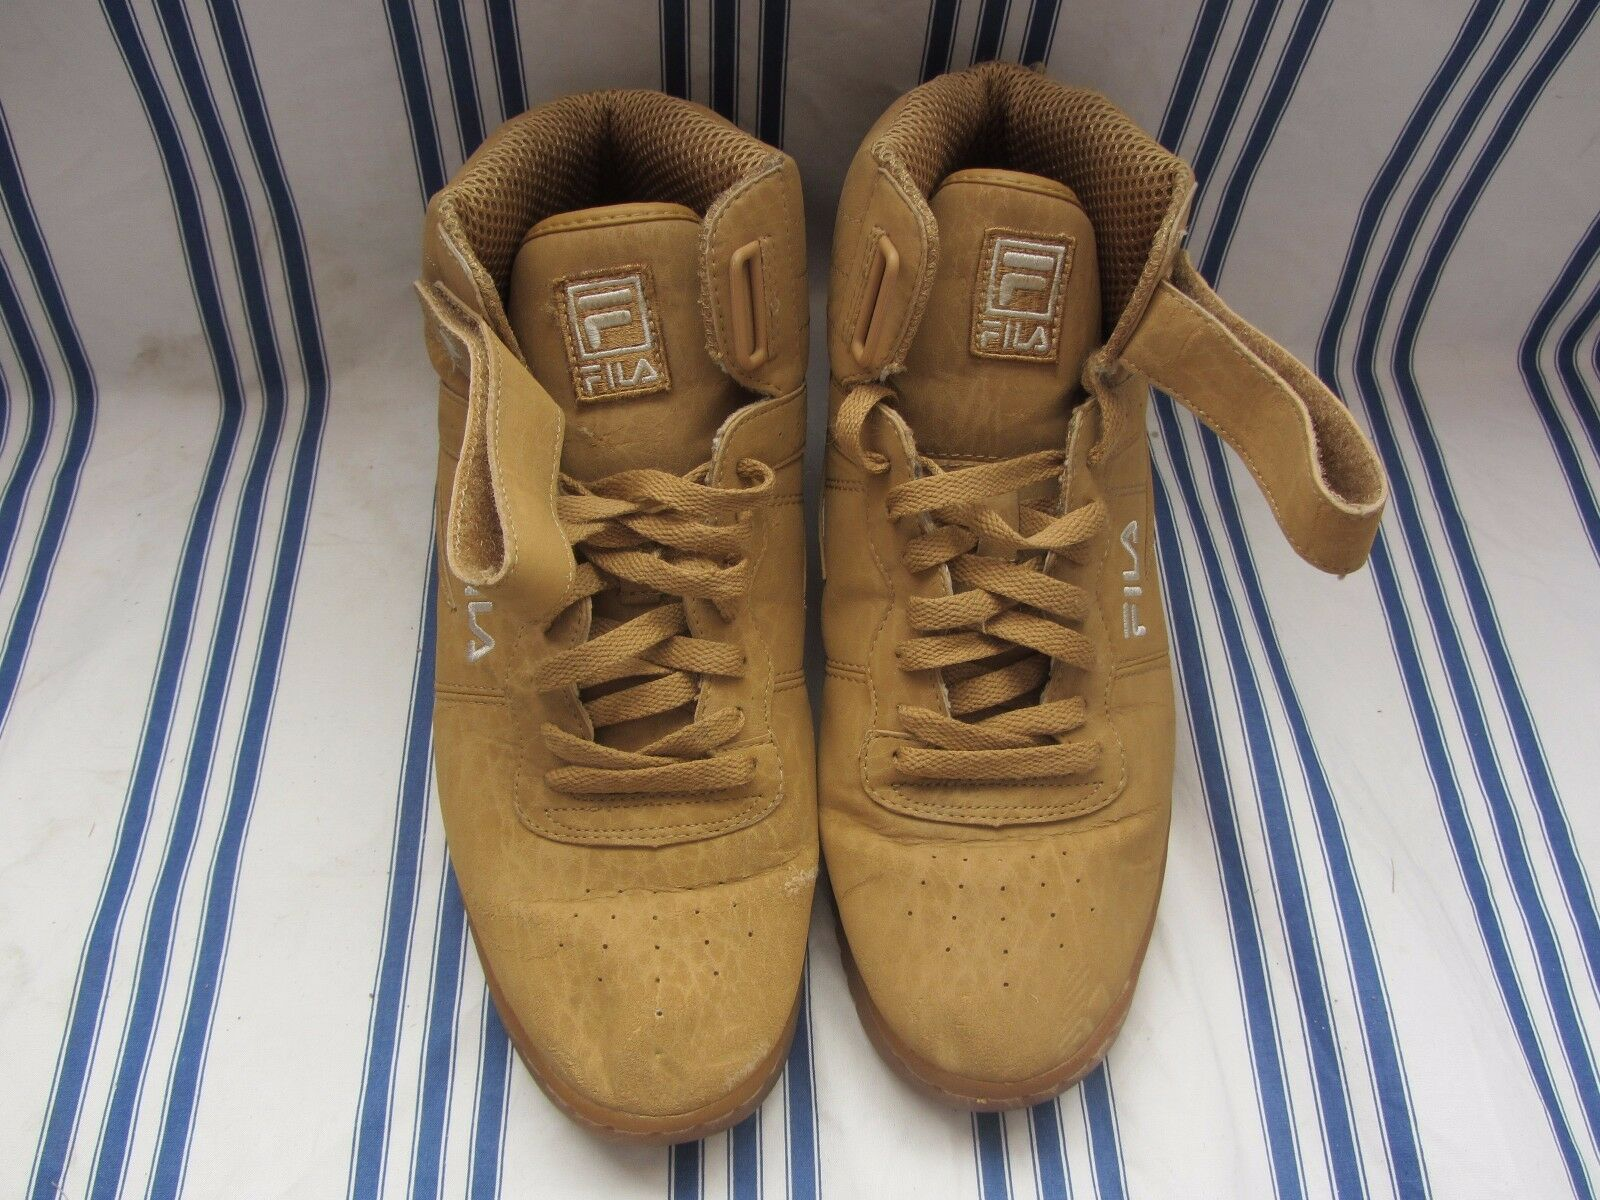 Fila  Mid High Top boots shoes  Size 10 1 2